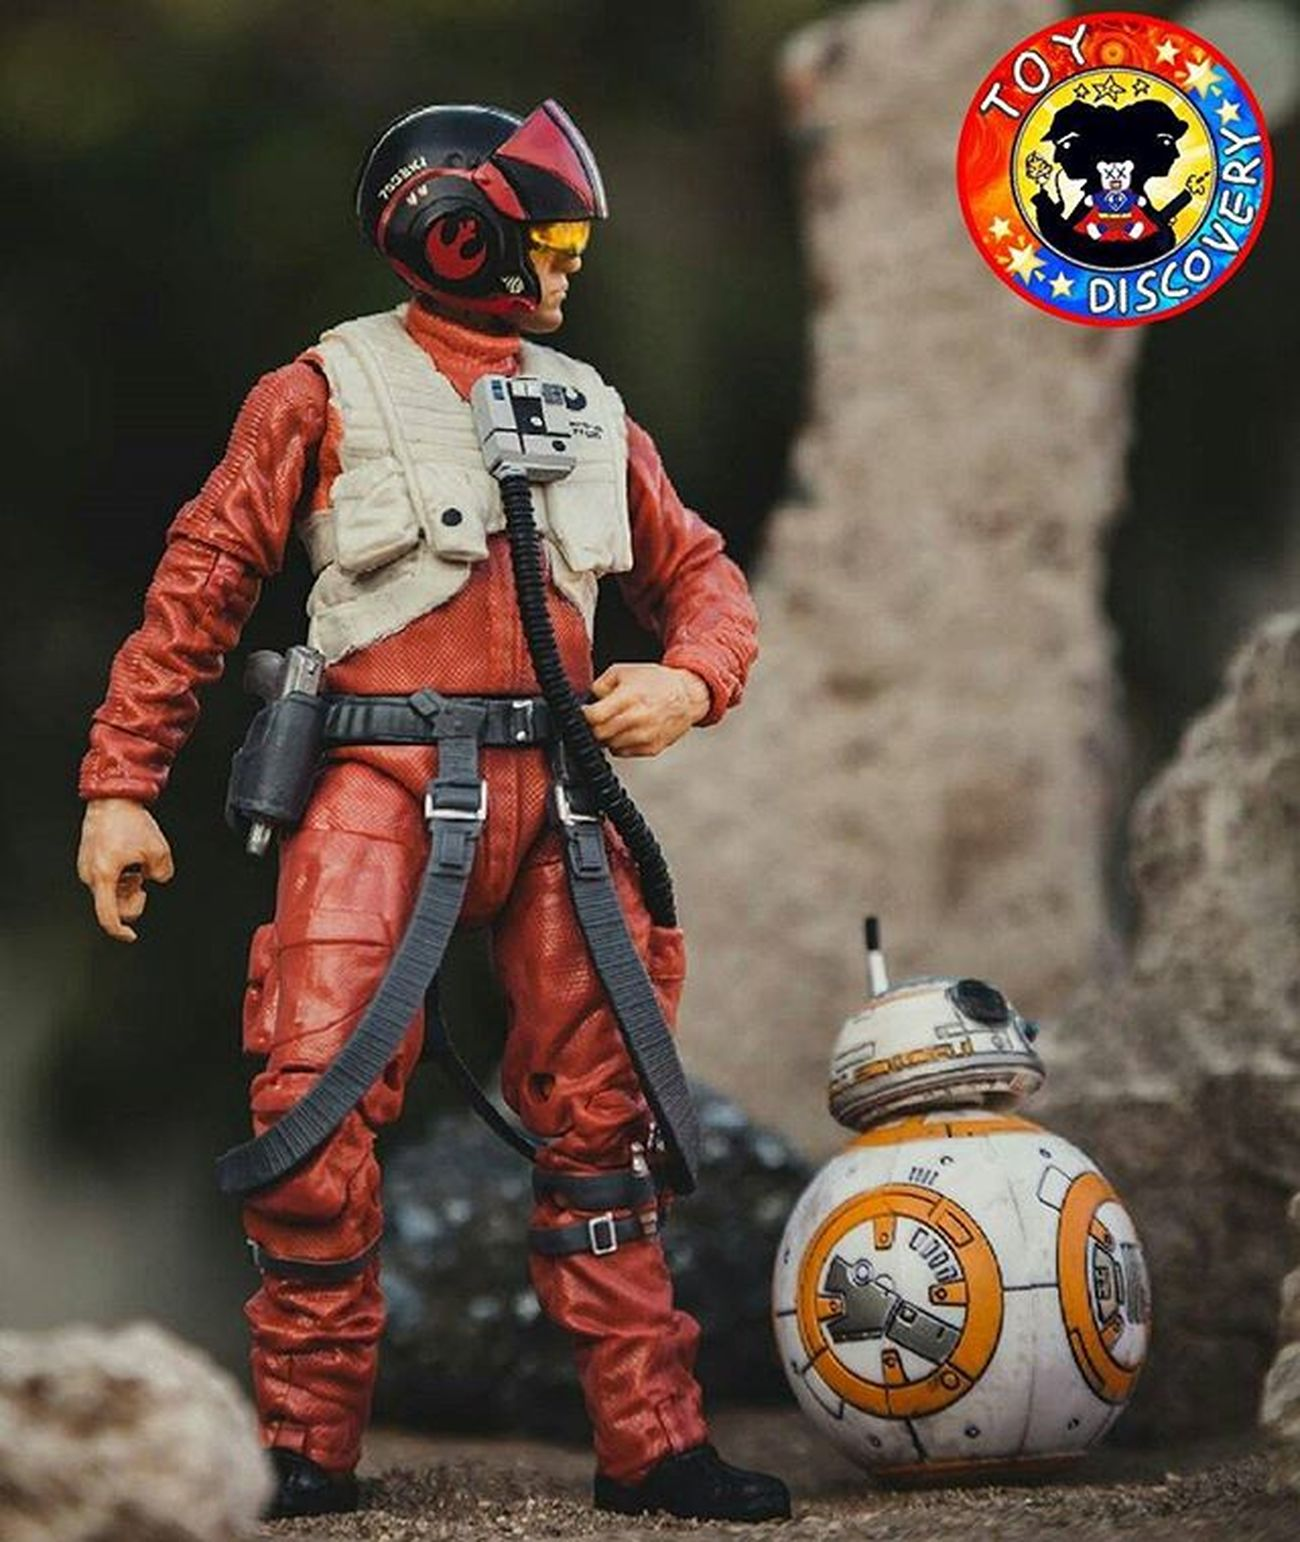 TheForceAwakens Bb8 🌠🌠🌠🌠🌠🌠🌠🌠🌠🌠🌠🌠🌠🌠🌠 Toydiscovery feature 🌠🌠🌠🌠🌠🌠🌠🌠🌠🌠🌠🌠🌠🌠🌠 Congrats to: @rebelpelicano 🌠🌠🌠🌠🌠🌠🌠🌠🌠🌠🌠🌠🌠🌠🌠 If you want us feature your art Toy pic pls Follow n tag: @TOYDISCOVERY . Toydiscovery . 🌠🌠🌠🌠🌠🌠🌠🌠🌠🌠🌠🌠🌠🌠🌠 Thank You By @Toydiscovery 24.03.2016 . Toyphotography Toys Toyslagram_Starwars Anime Toyslagram LEGO Afol Bricknetwork Nendoroid Love Chewbacca Hansolo Dccomics Bb8 Toystagram Woody Toyslagram_lego Avengers Marvel Starwars toysphotogram nintendo love superman dccomucsneca